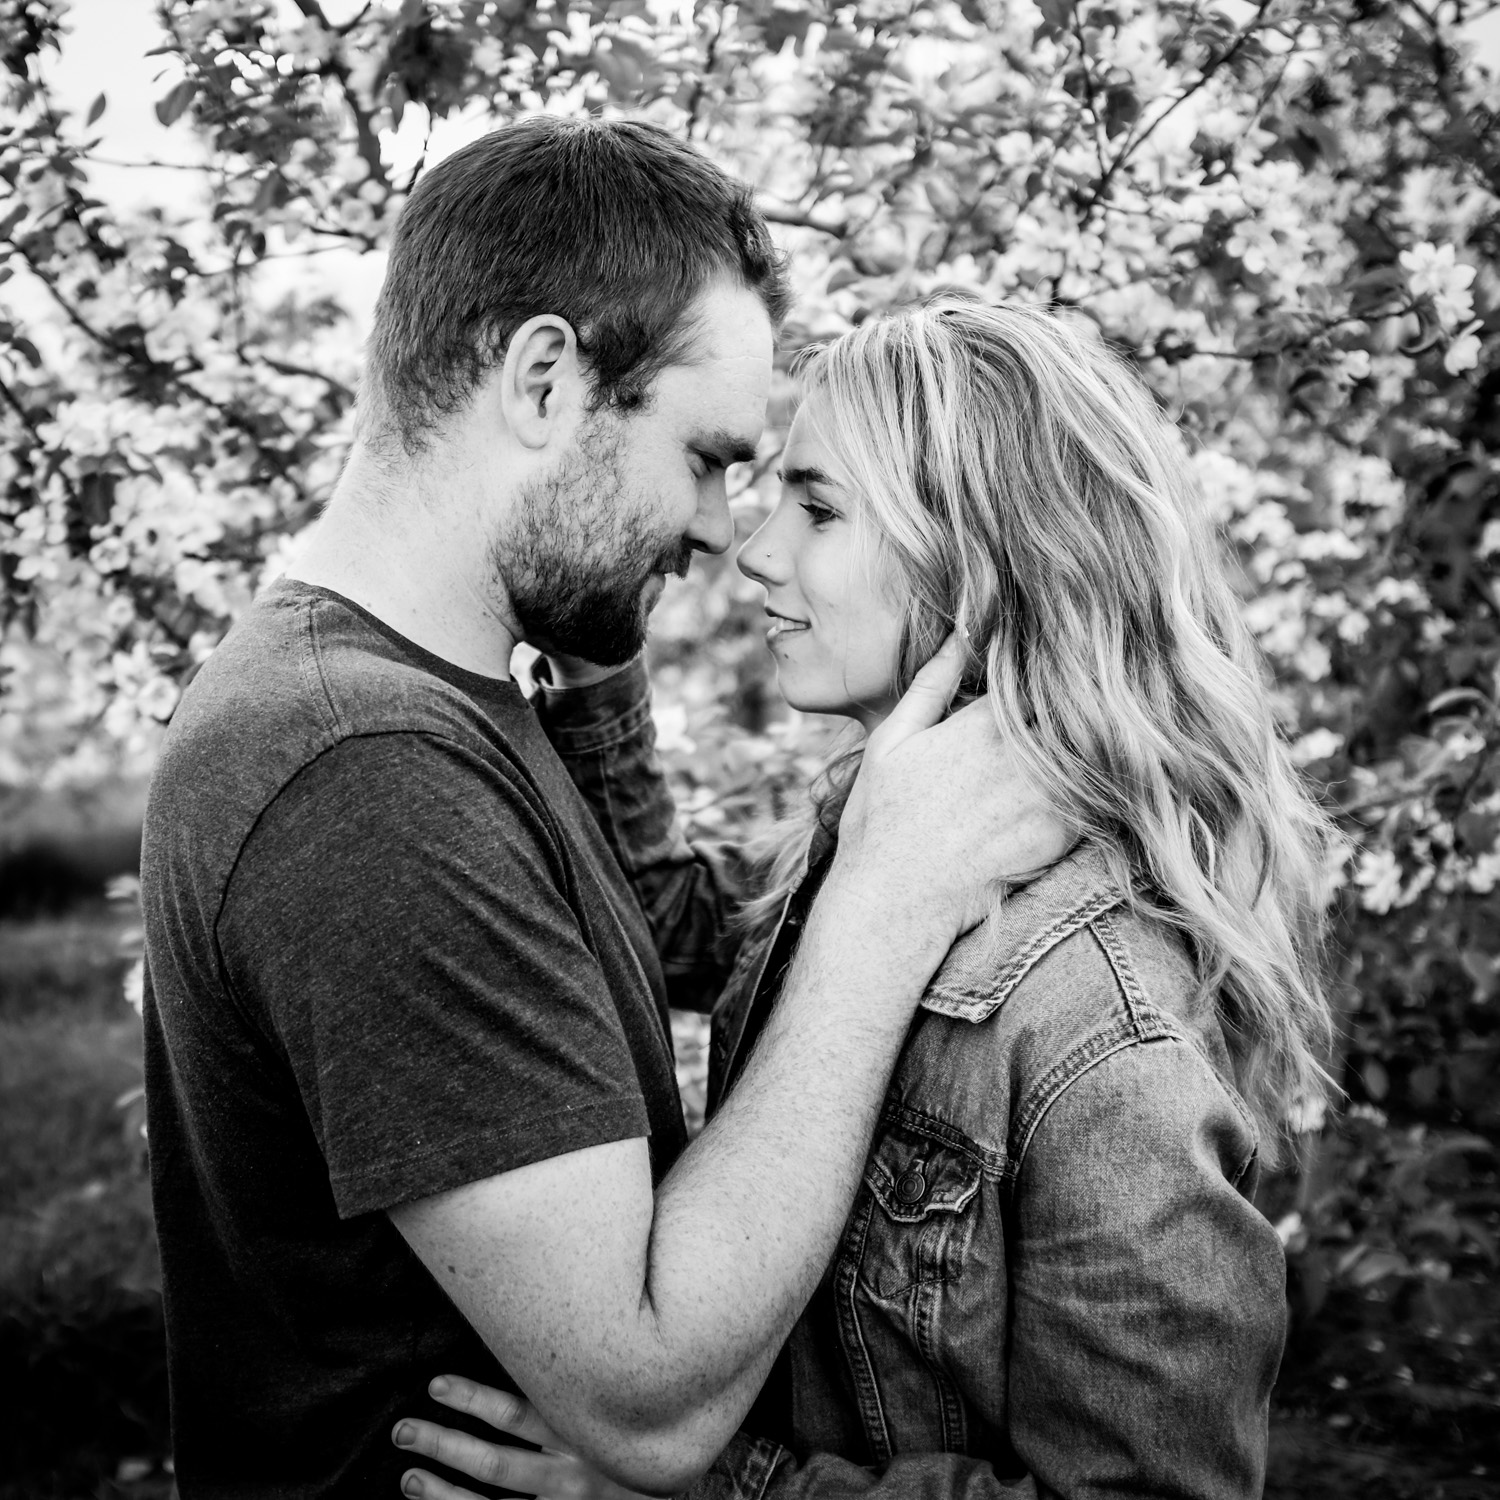 Romantic black and white photo of a couple - Fun Ways to Photograph Couples That are a Bit Awkward